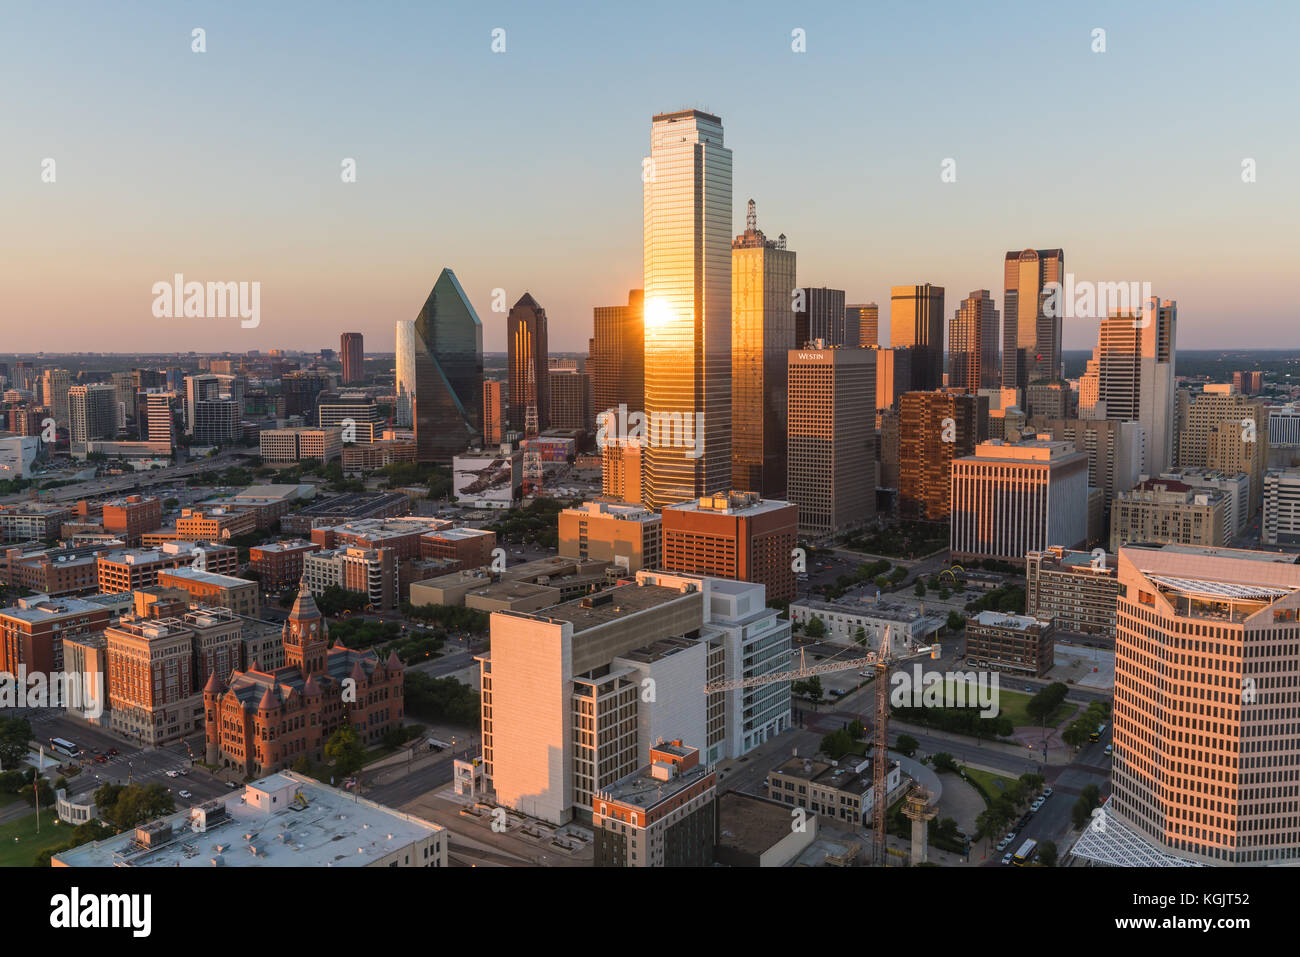 Aerial view of Dallas, Texas city skyline at sunset - Stock Image